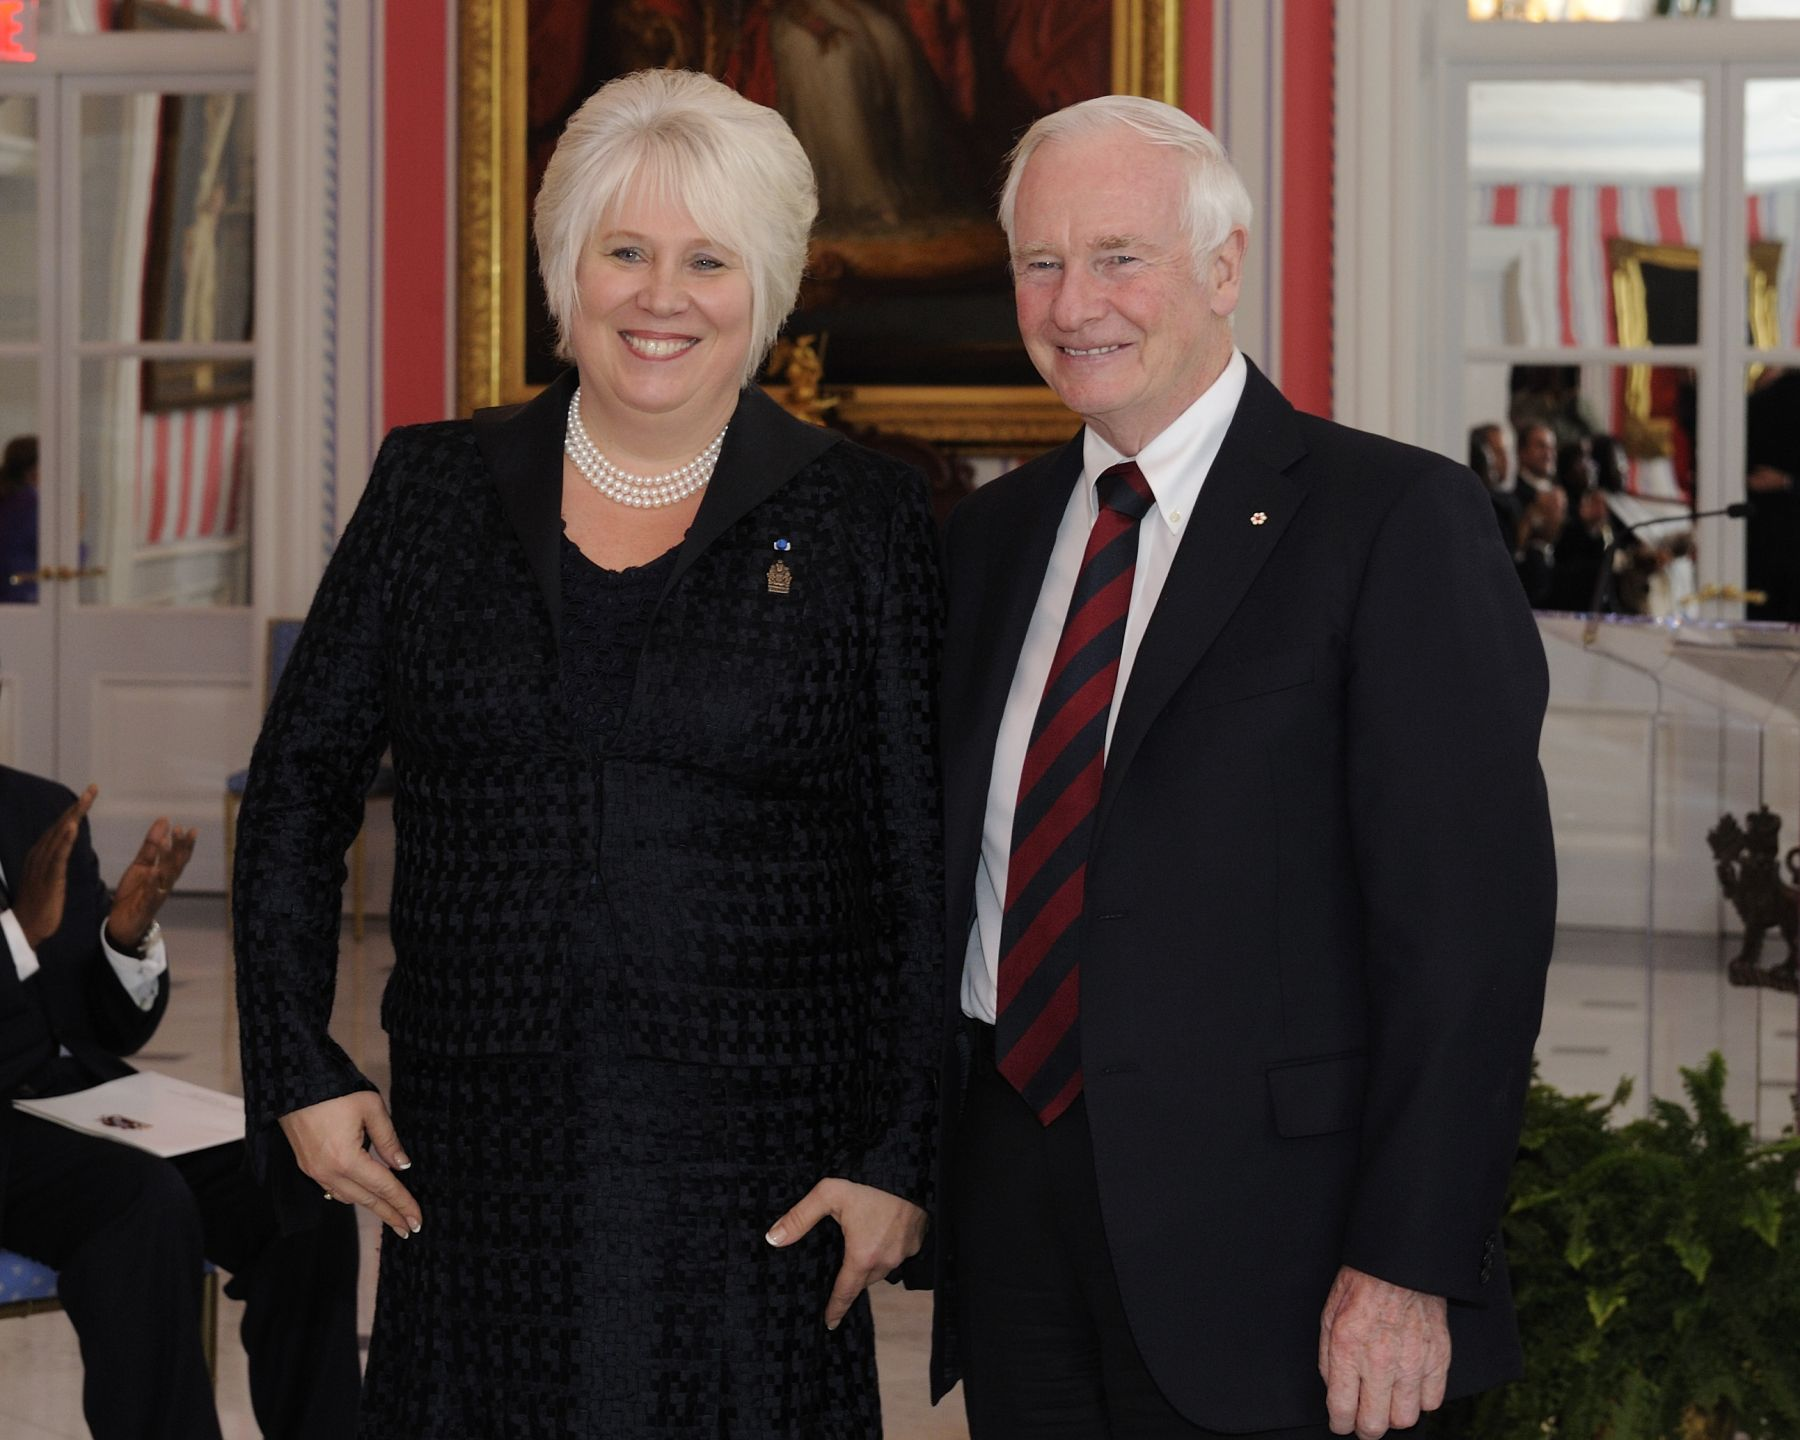 The Governor General received the credentials of Her Excellency Marina Kaljurand, Ambassador-designate of the Republic of Estonia.